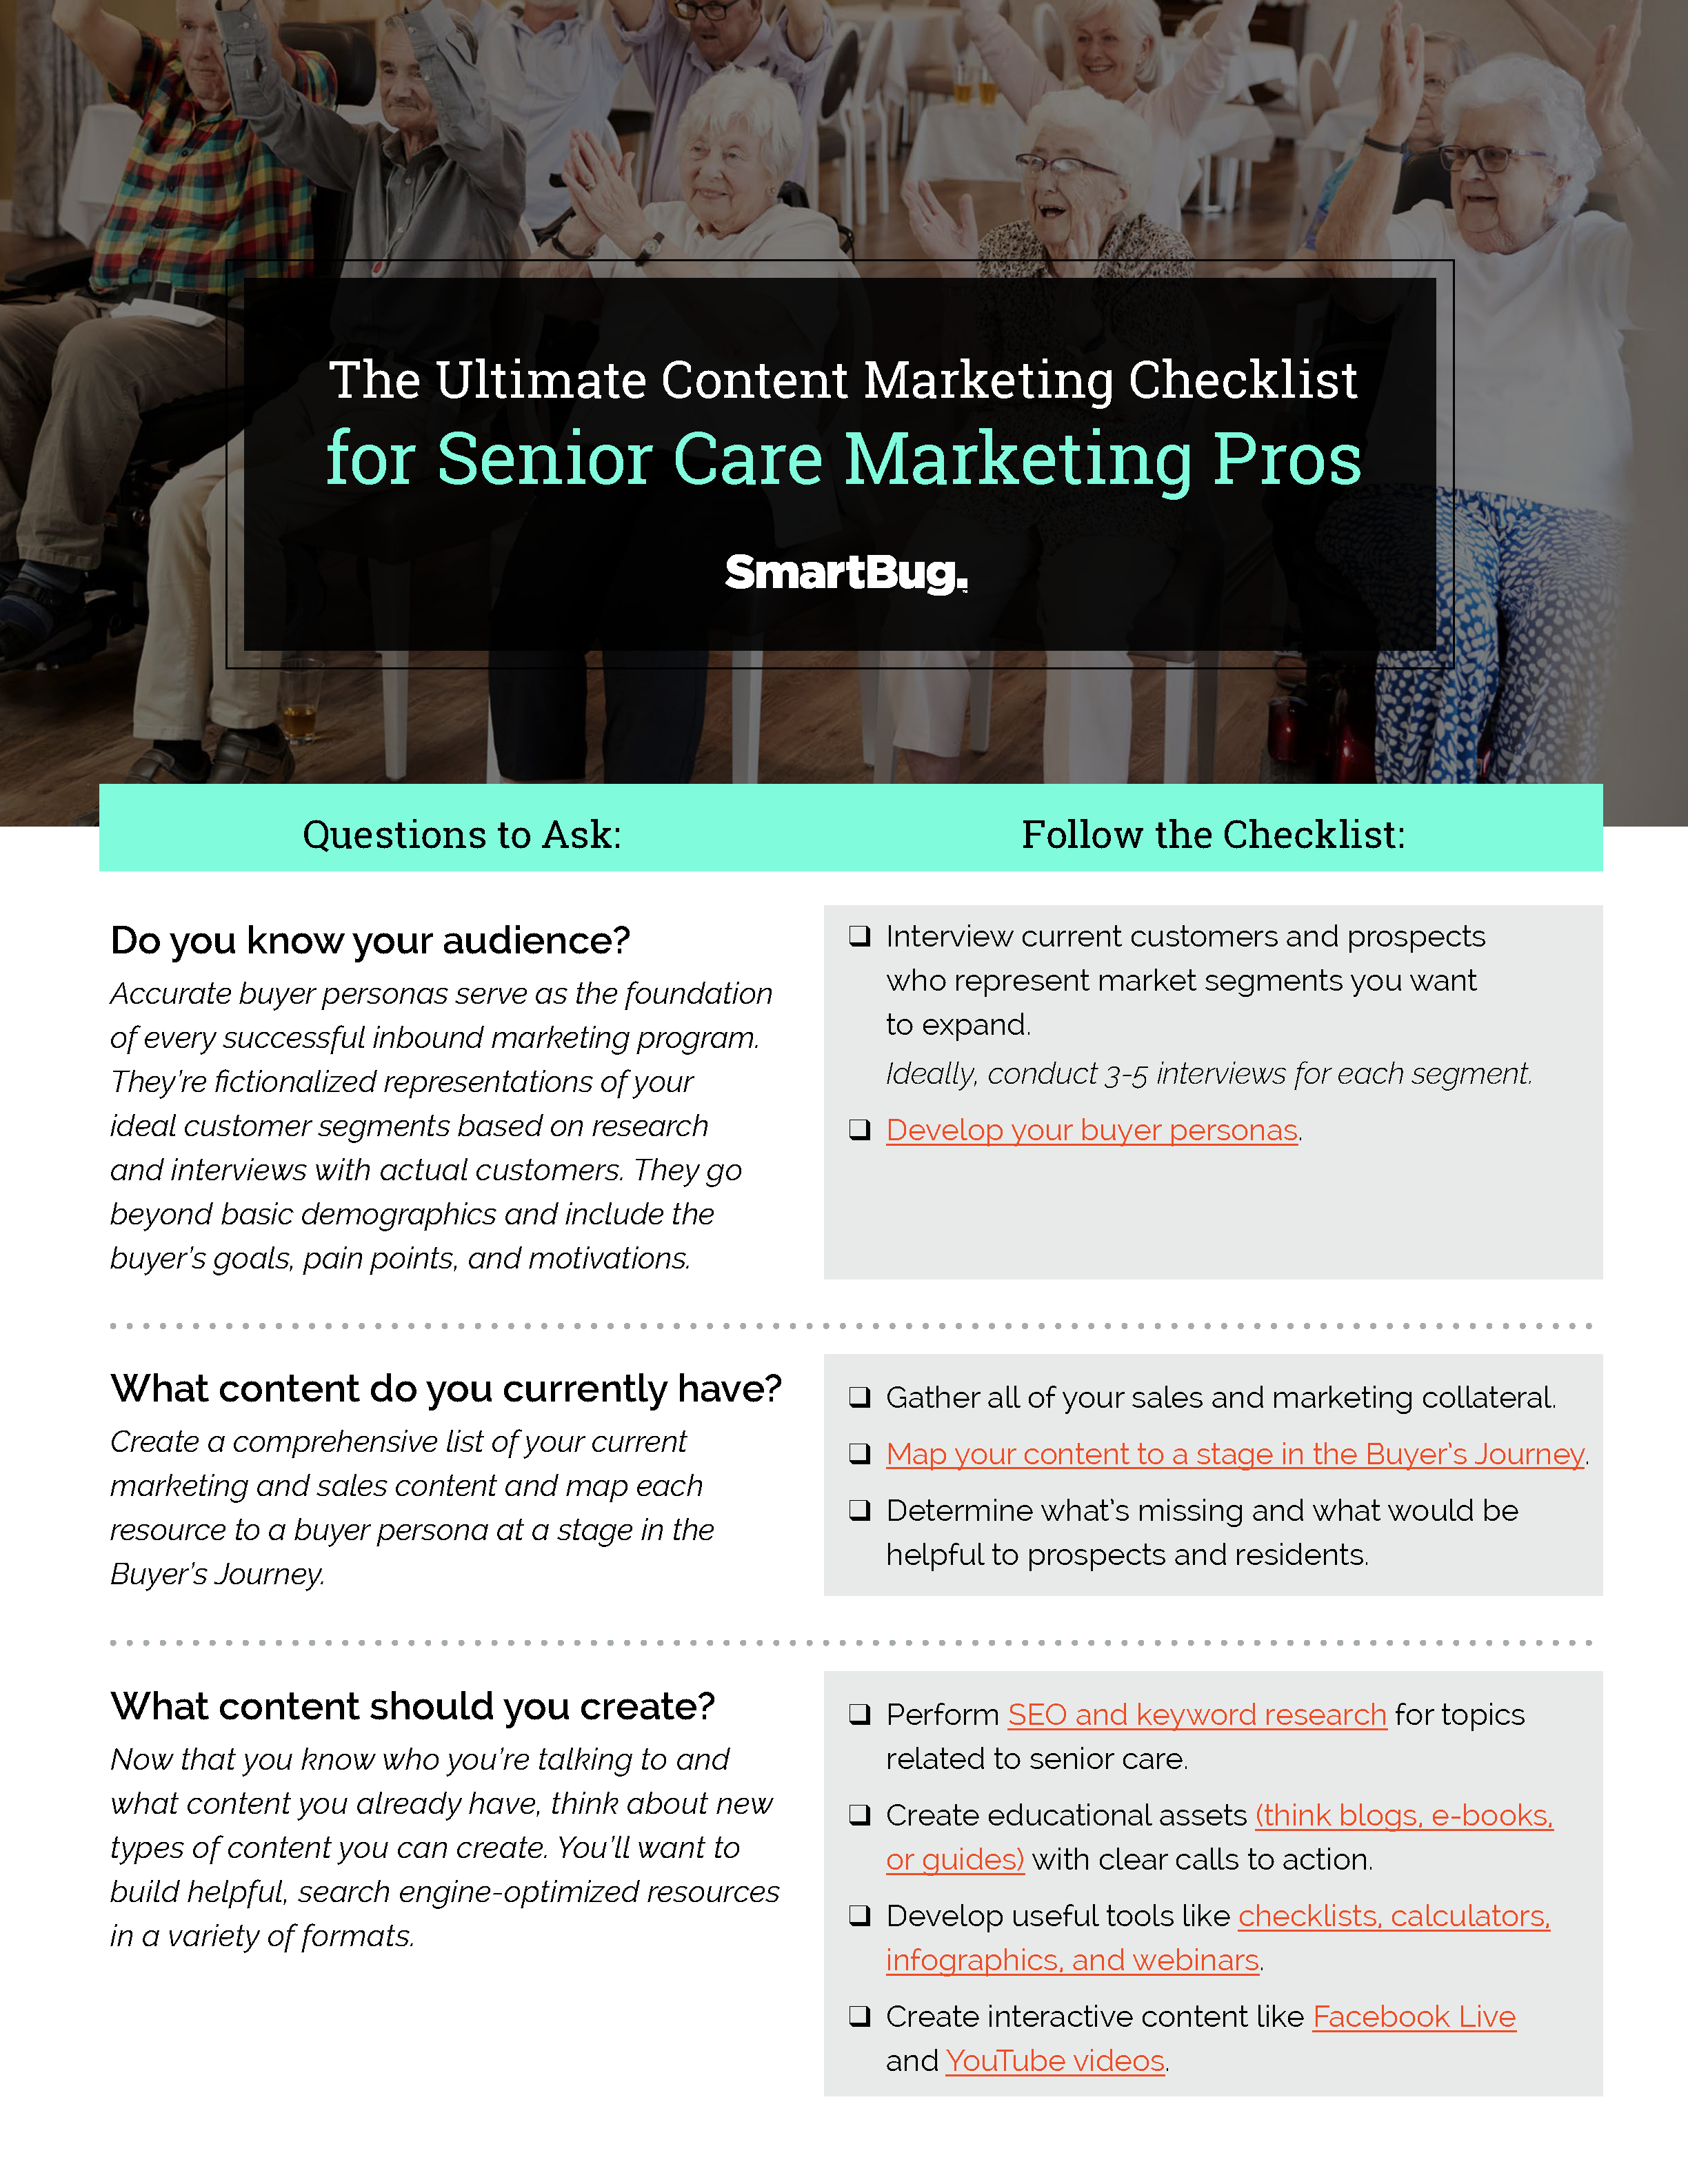 The Ultimate Content Marketing Checklist for Senior Care Marketing Pros